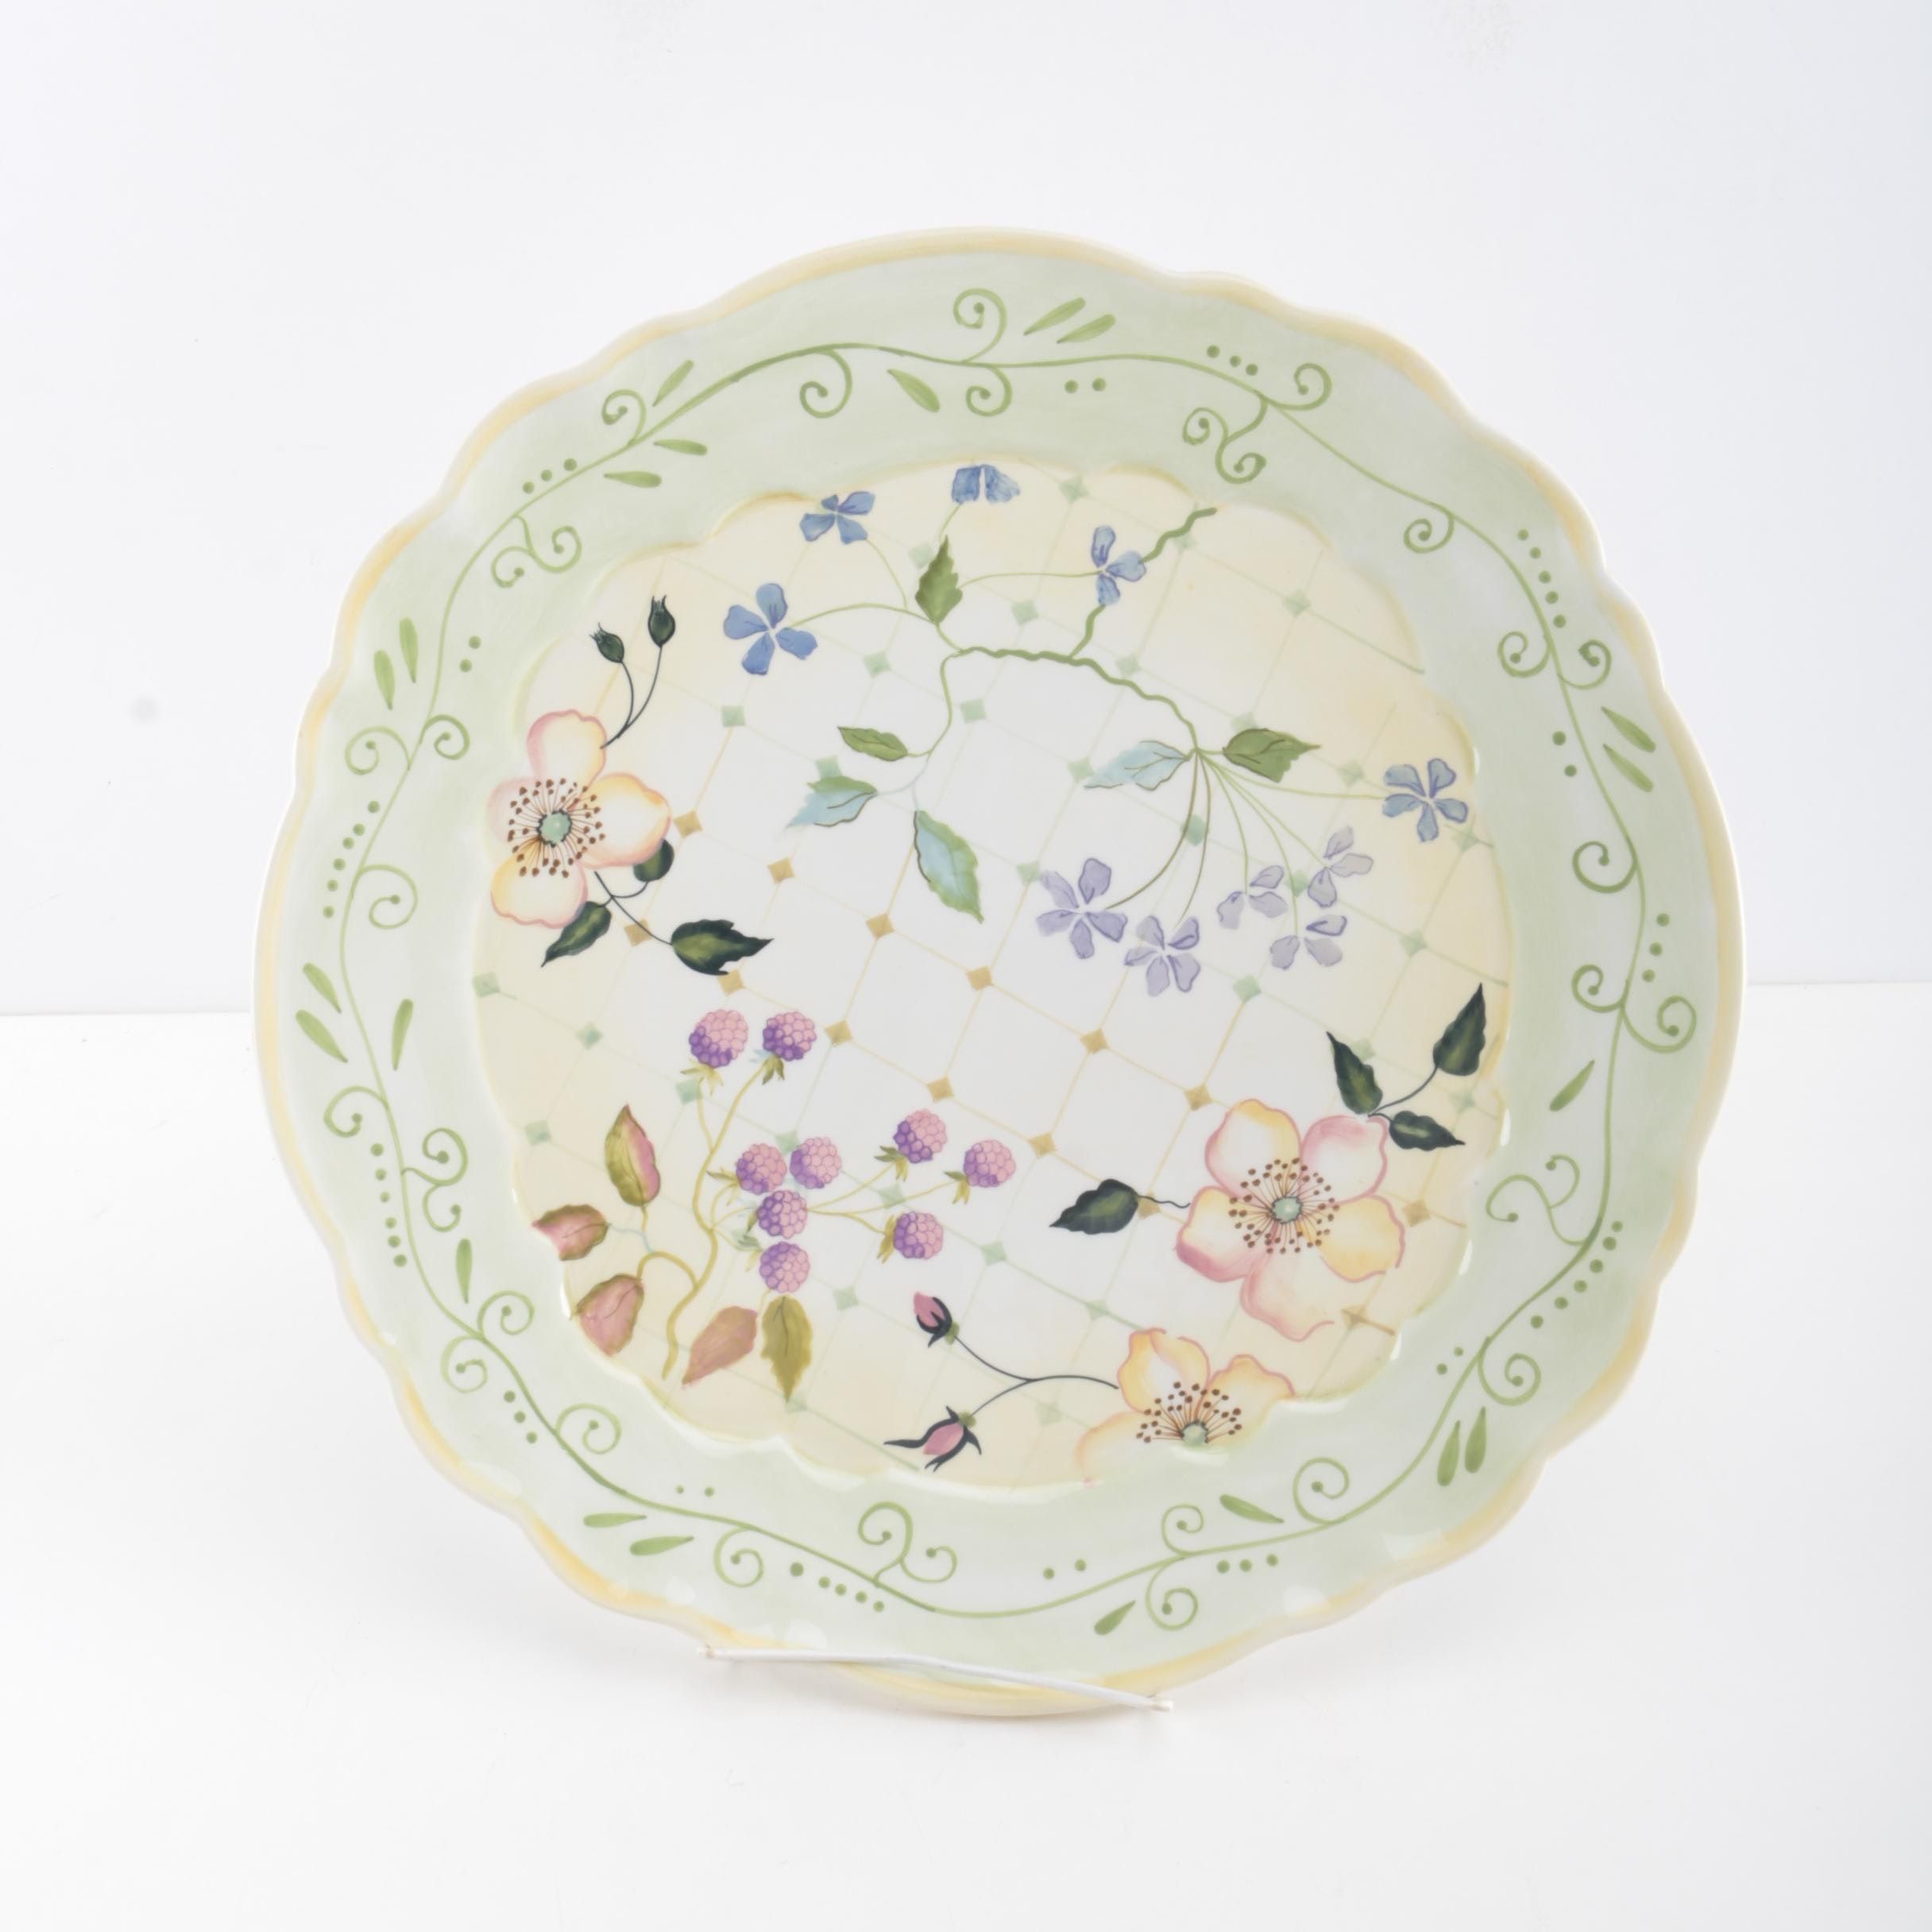 Hand-Painted Tracy Porter Ceramic Platter